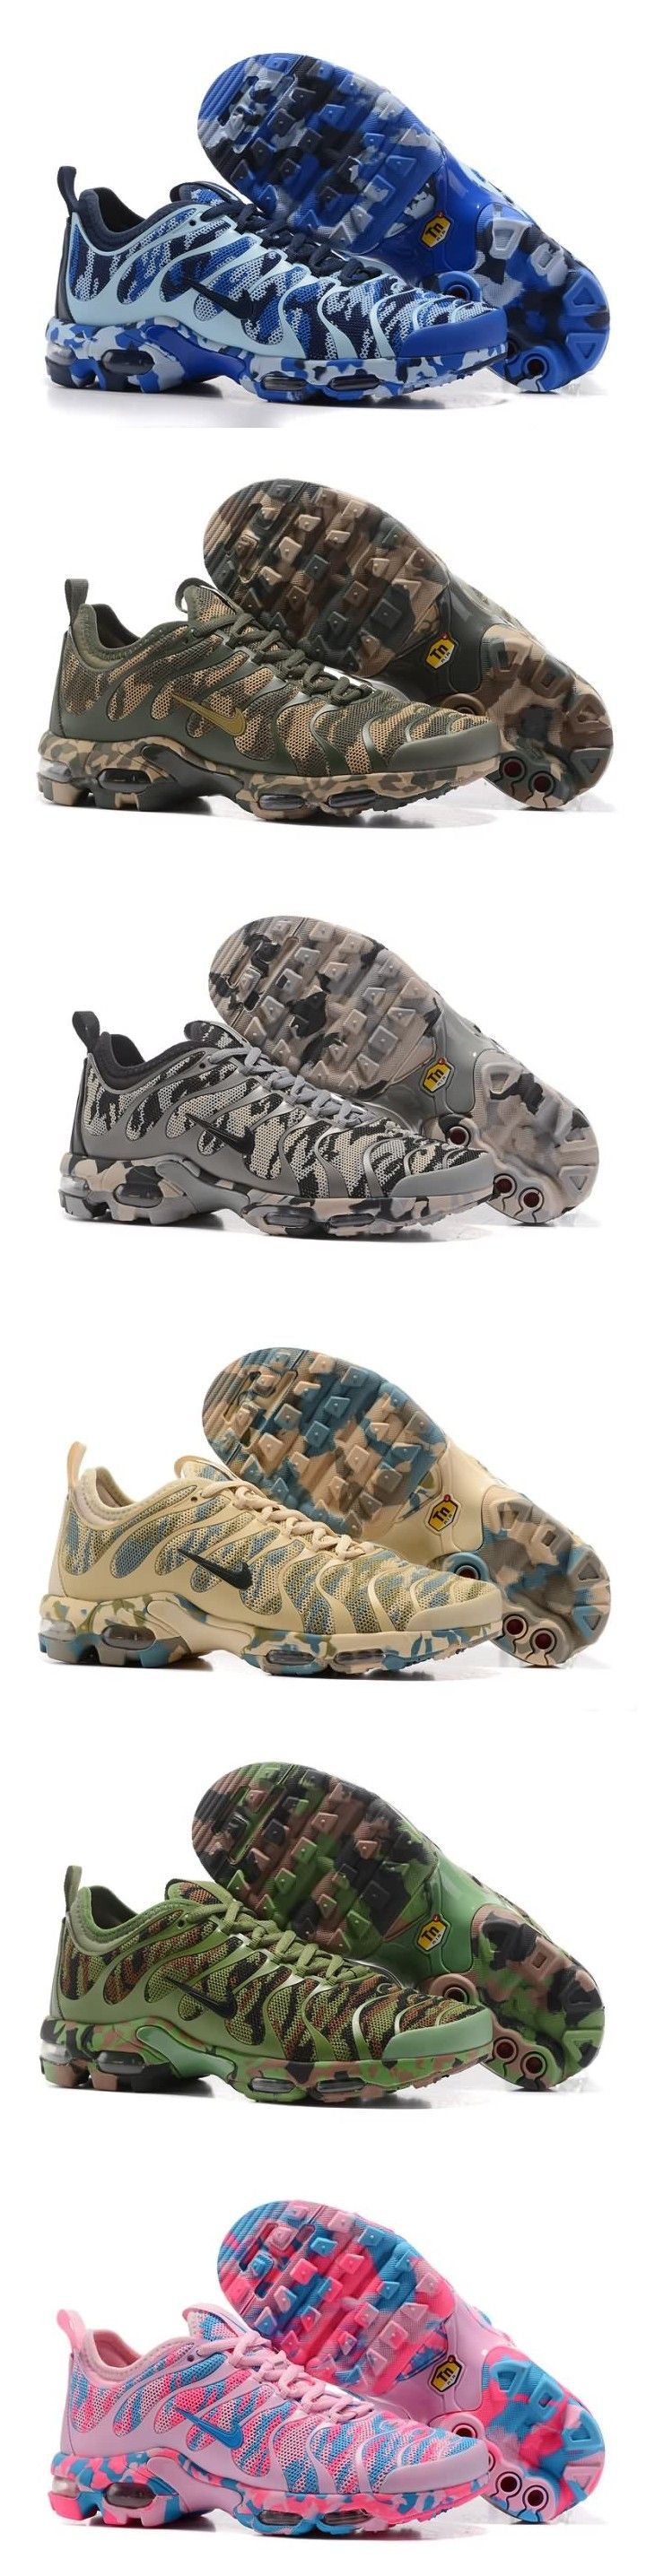 Nike Air Max Plus TN Ultra Camouflage Unisex shoes Free Shipping 36-46 WhatsApp:8613328373859